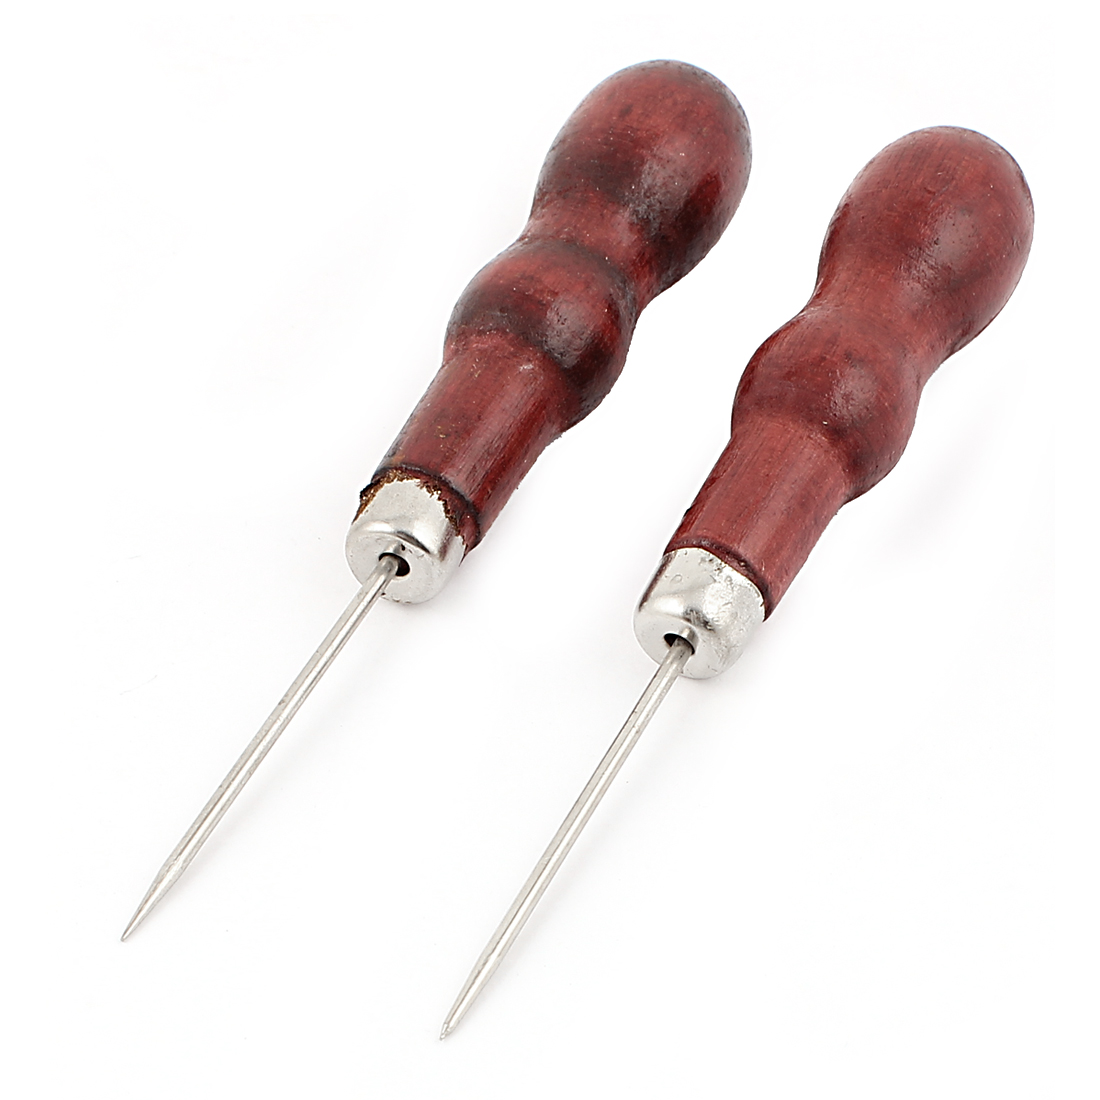 2 Pcs Nonslip Grip Metal Tapered Needle Leather Stitch Sewing Awl Burgundy